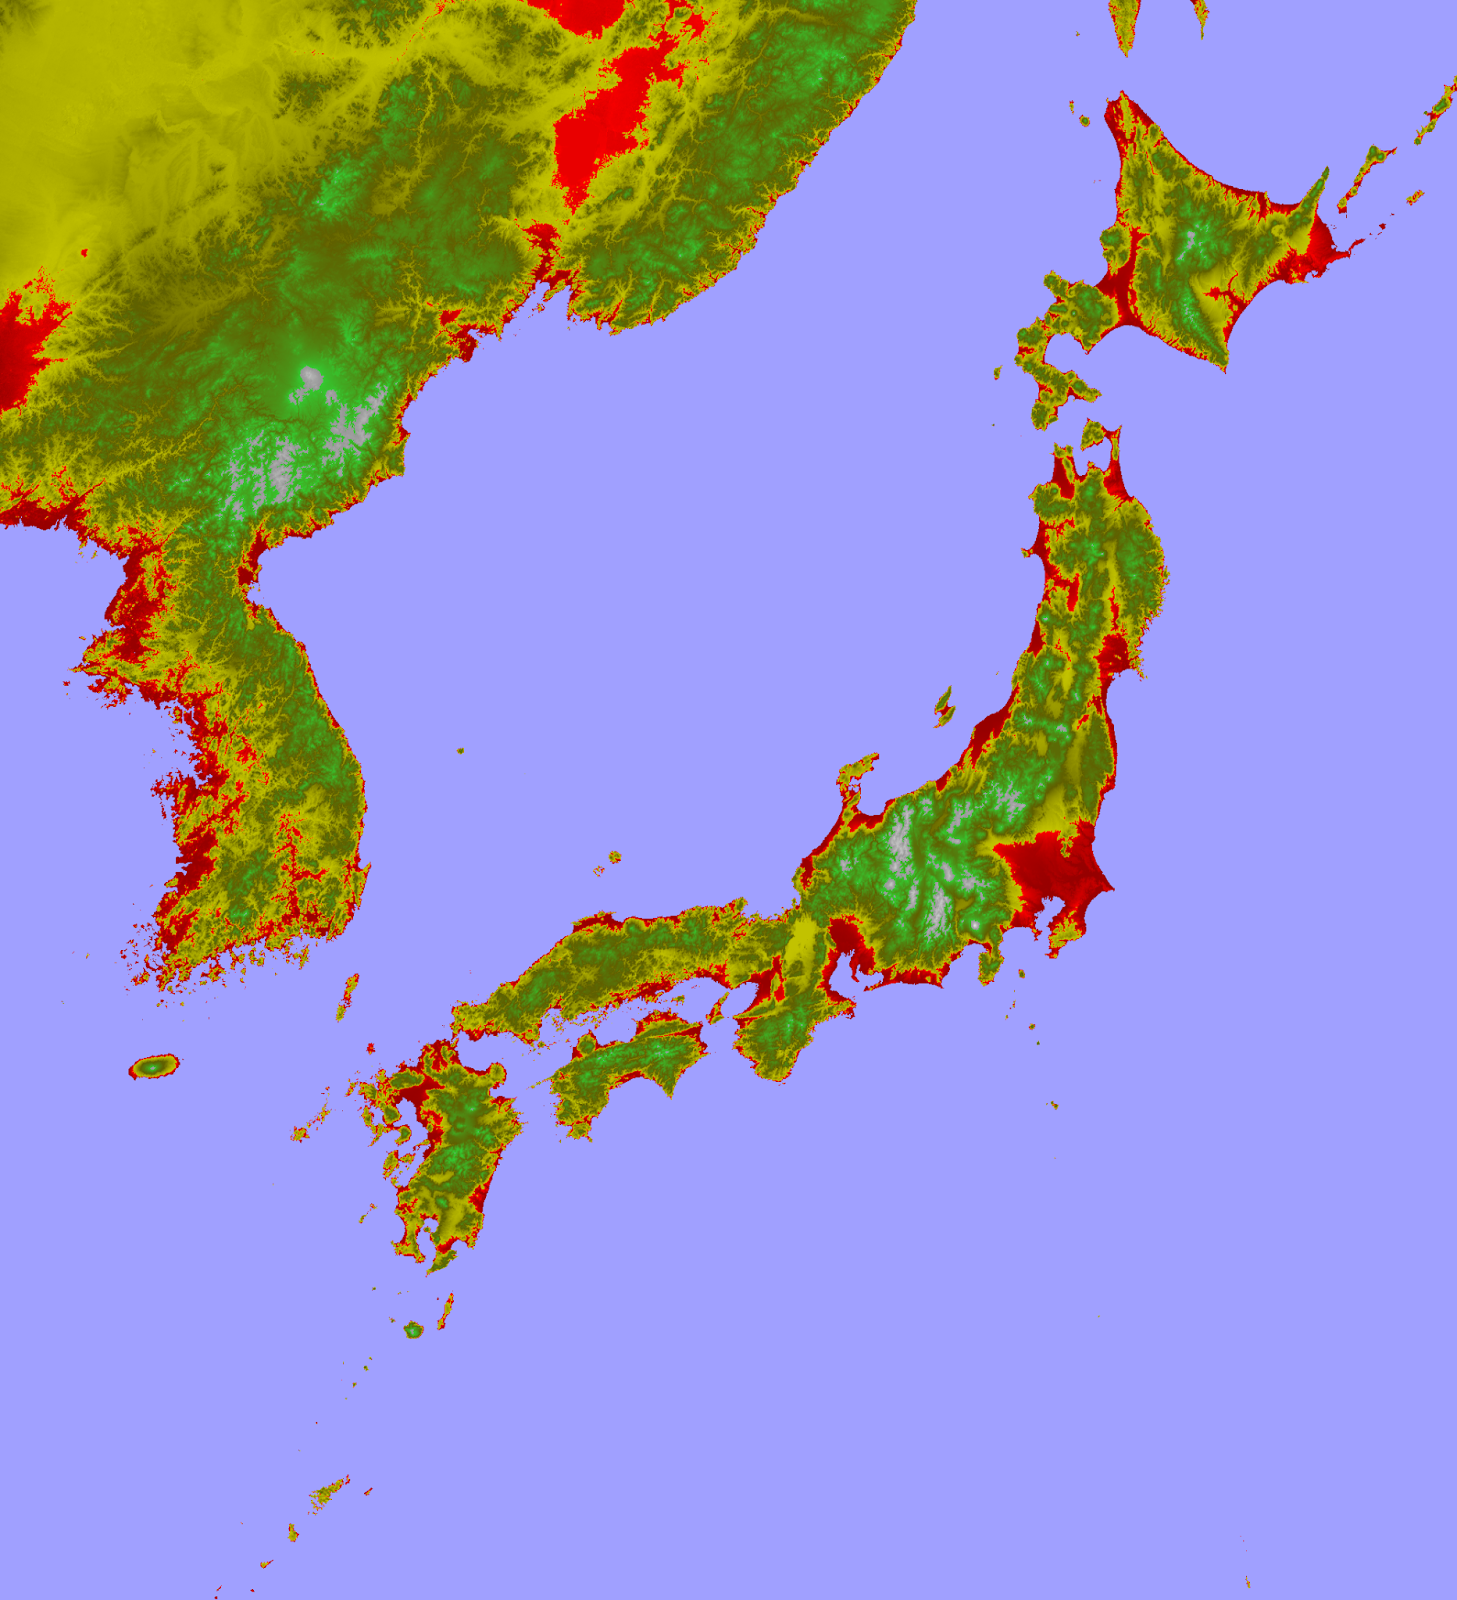 Submerged areas of Japan for a postulated 80m sea level rise